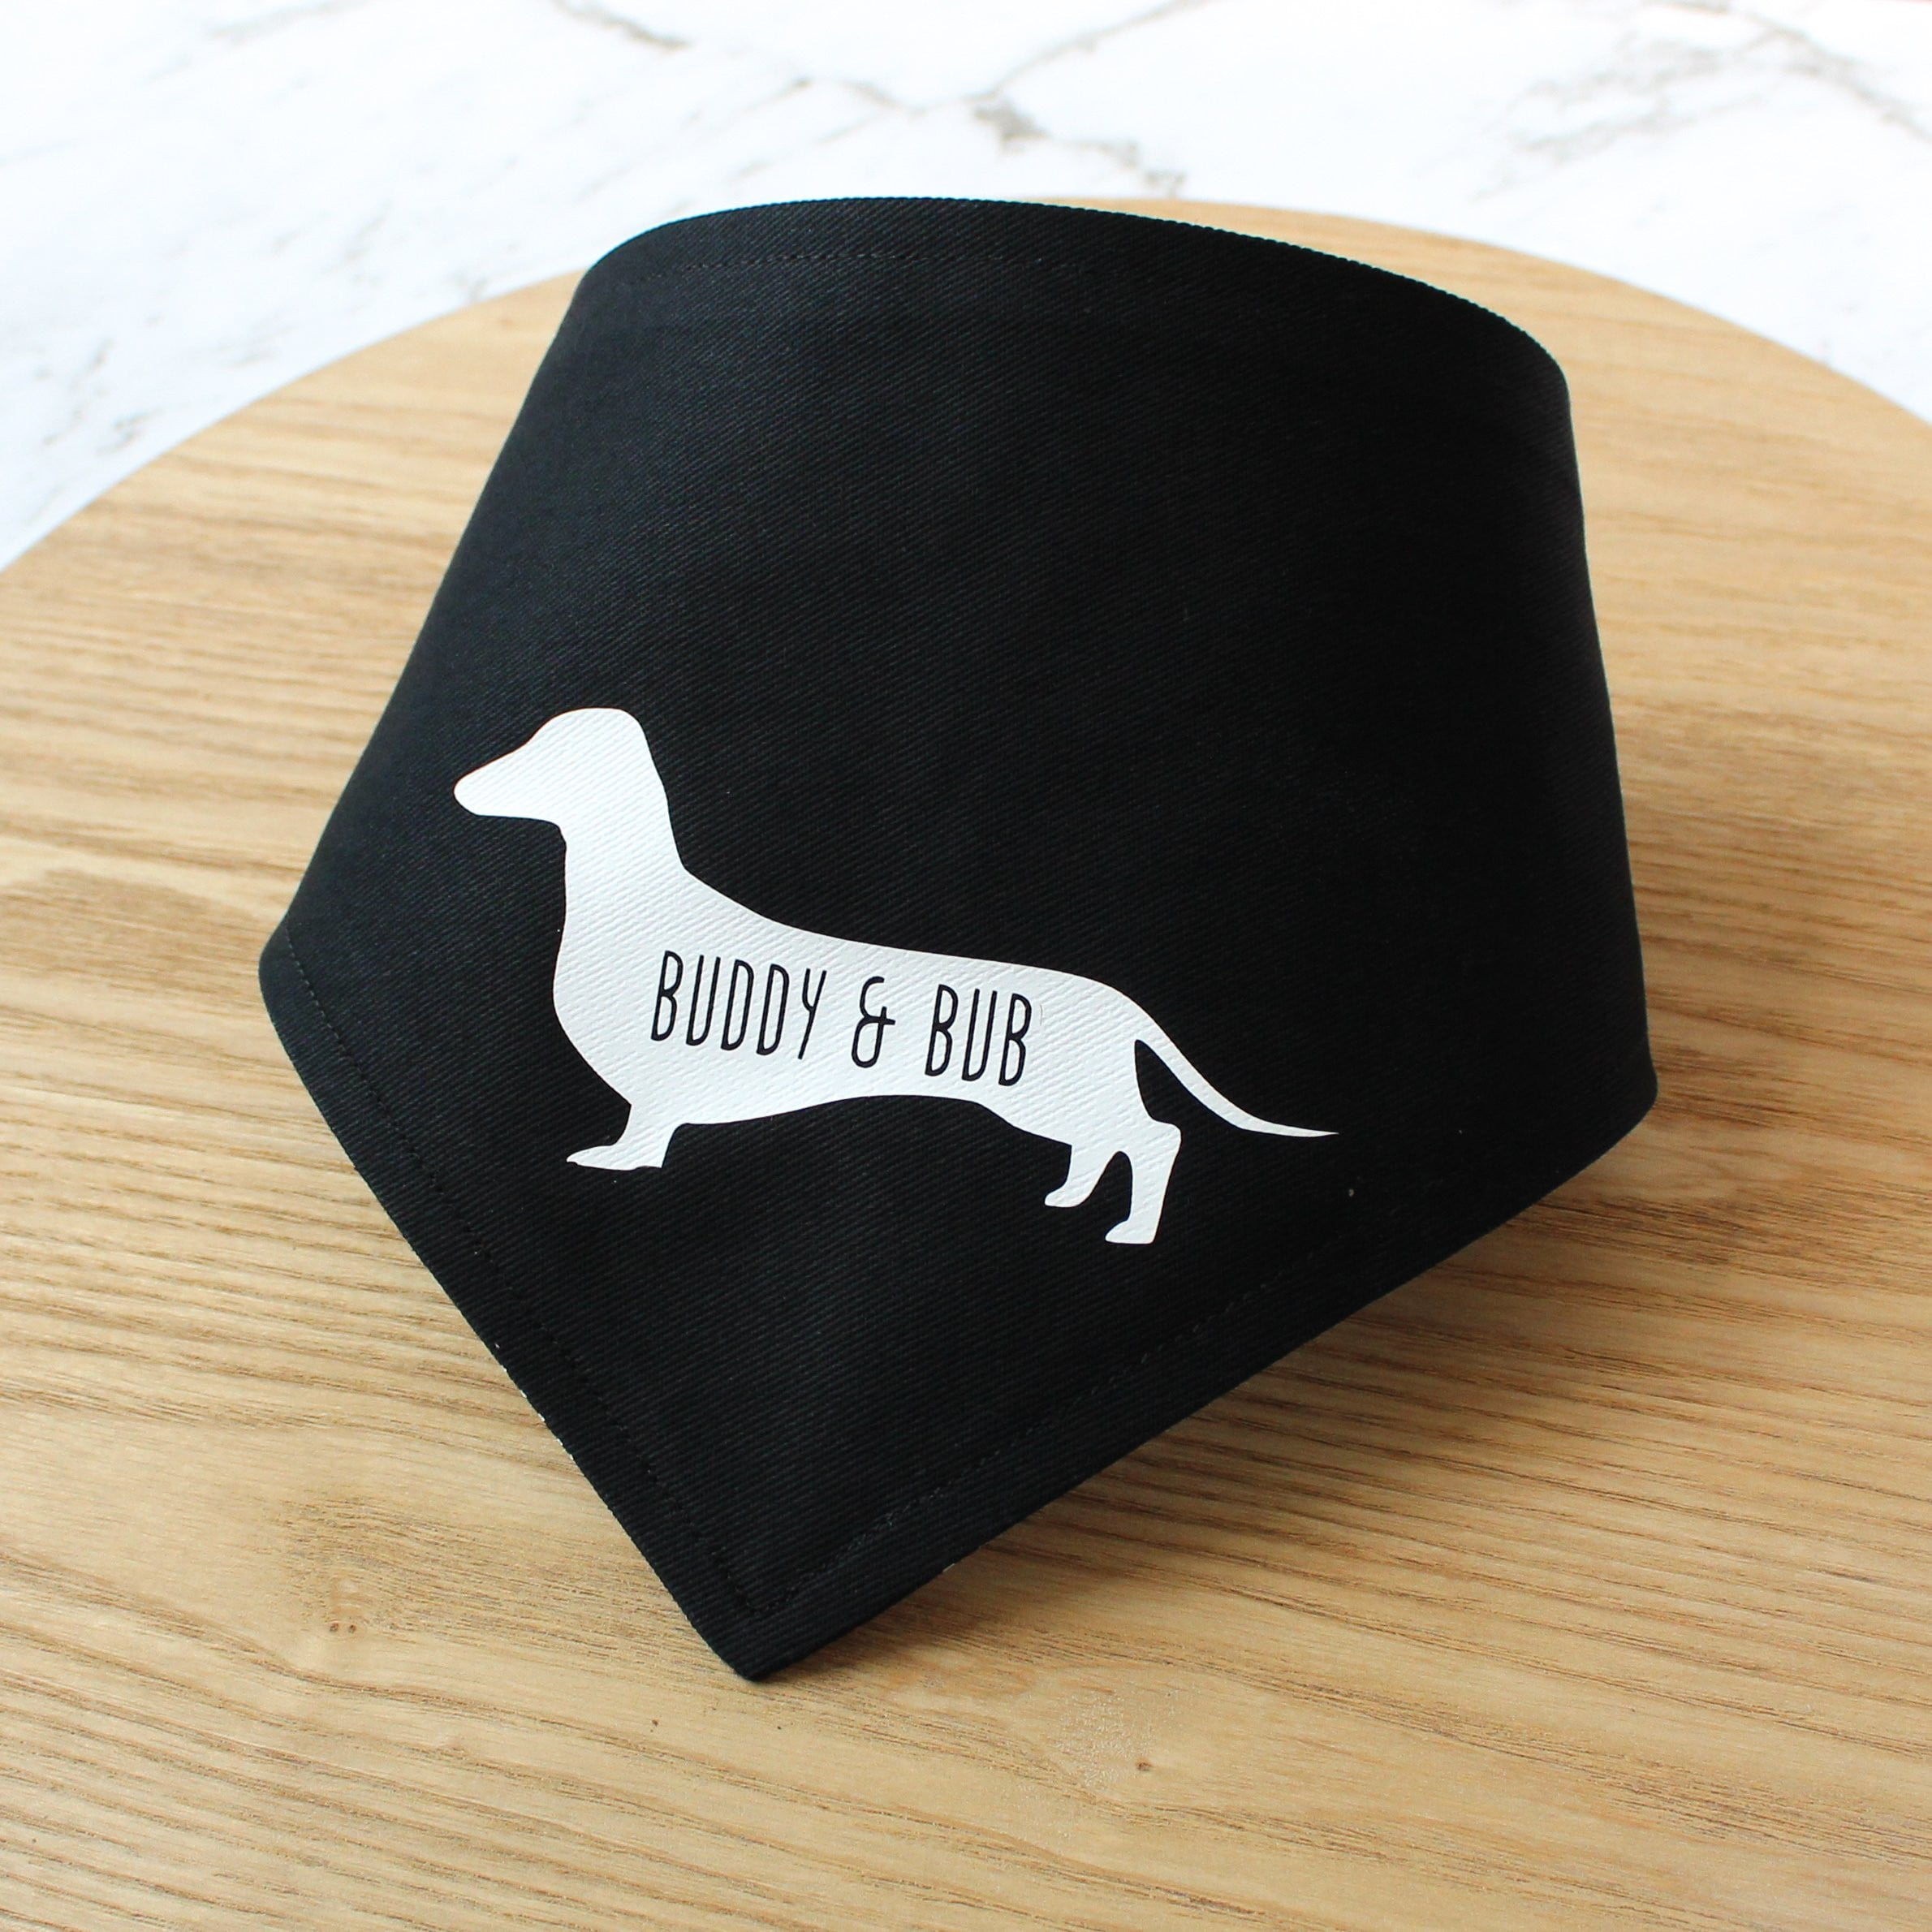 Custom Personalised Business Logo Dog/Pet Bandana by That Dog Shop - We have Afterpay!